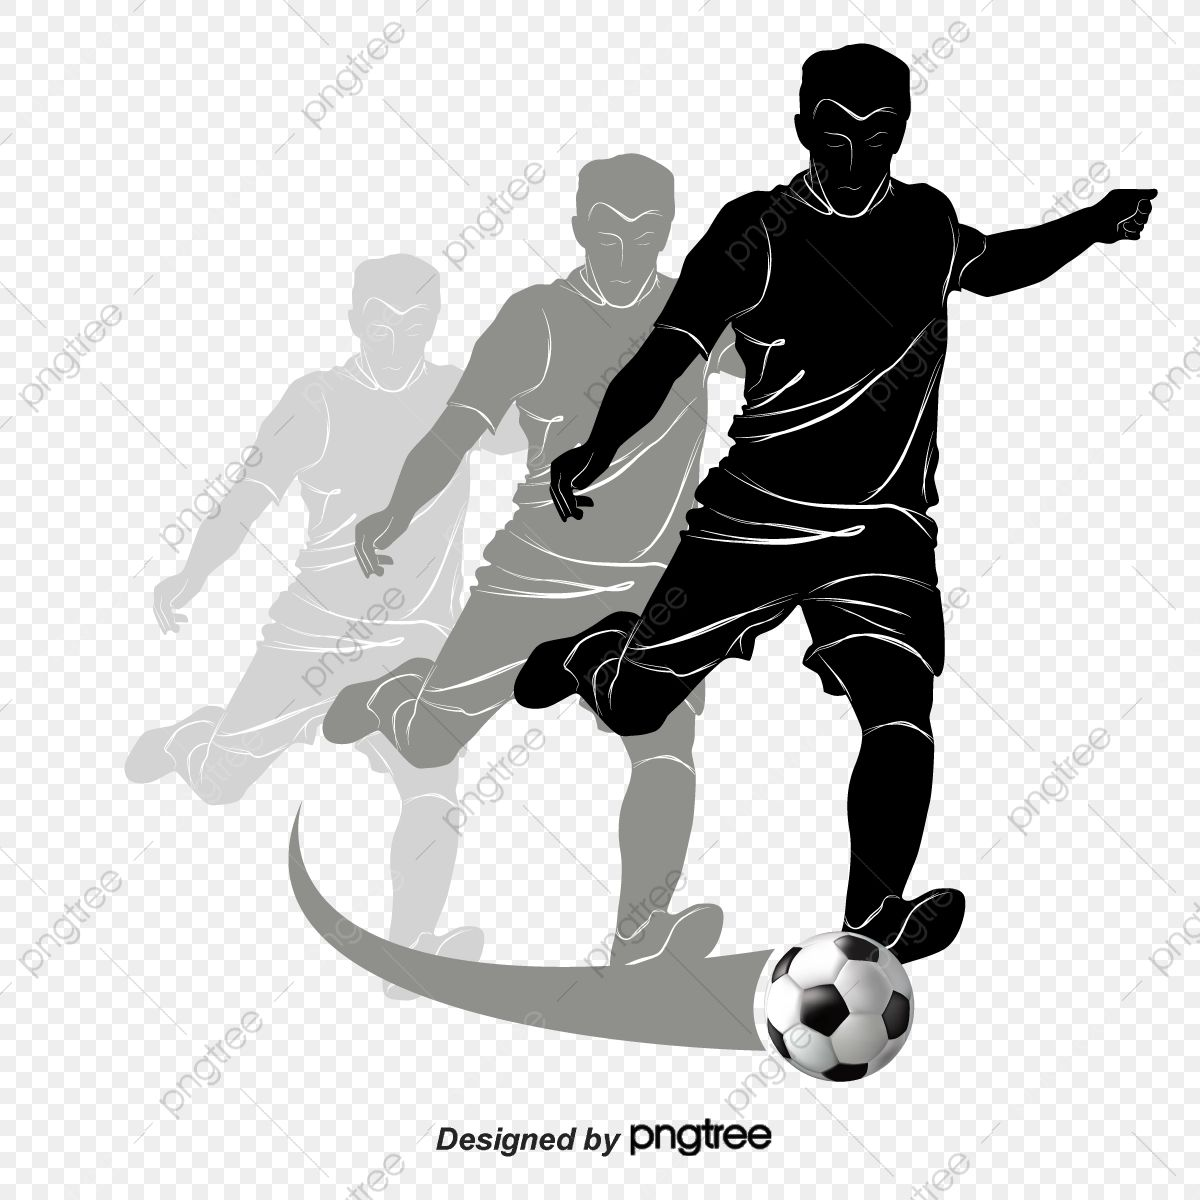 Download This Soccer Athlete Soccer Vector Football Athlete Transparent Png Or Vector File For Free Pngtree H In 2021 Soccer Backgrounds Football Background Soccer